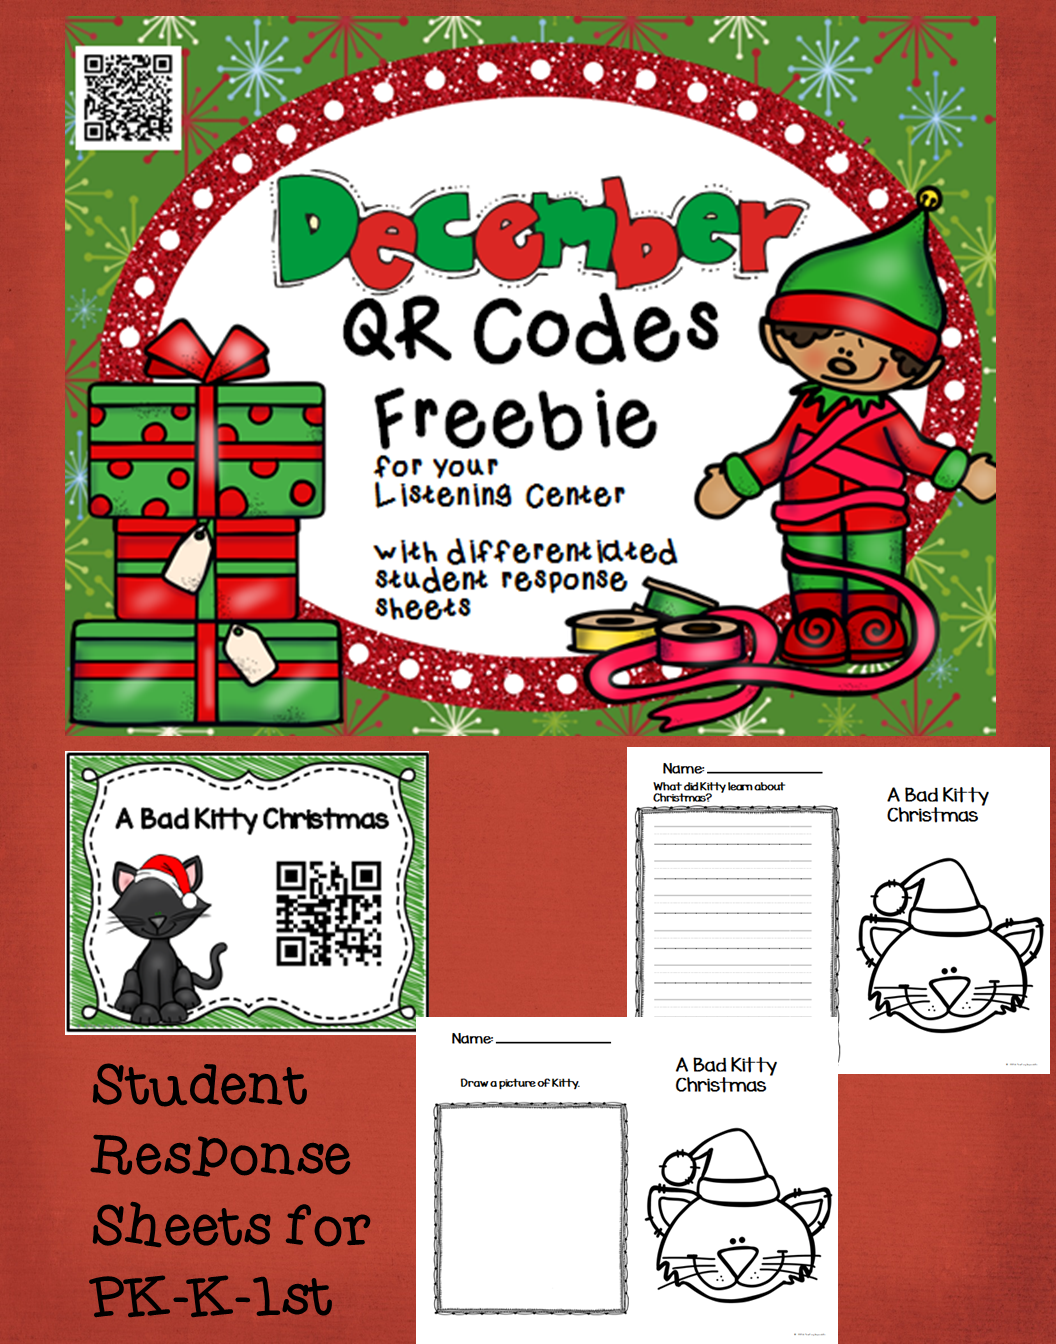 4 Christmas Qr Codes For Your Listening Center With Student Response Sheets Freebie Students